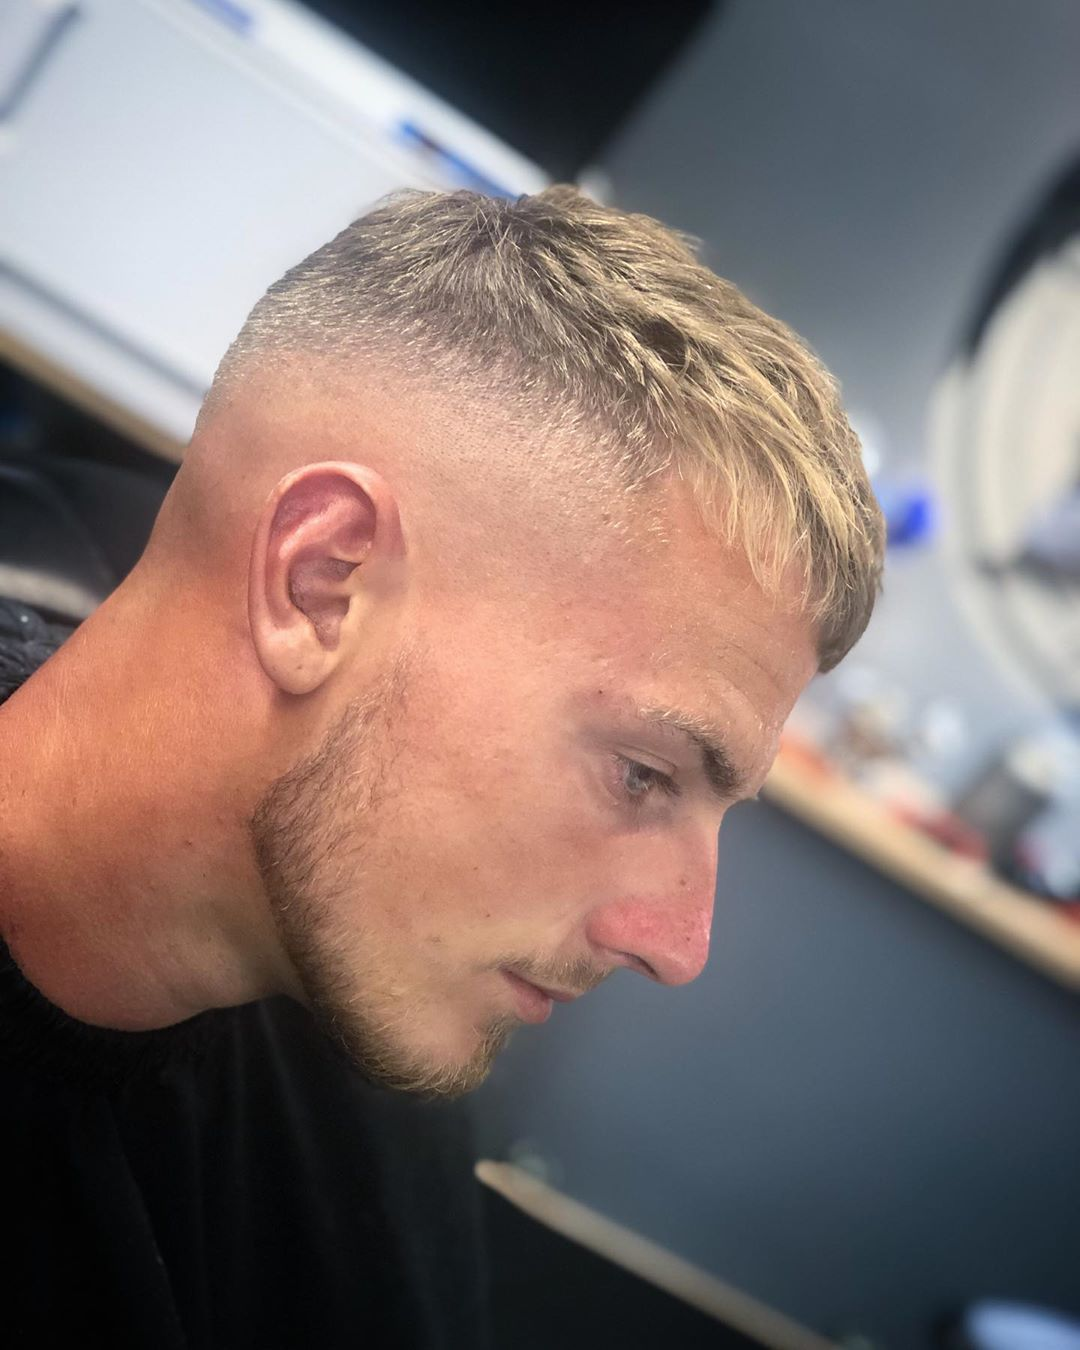 50 Best Short Haircuts For Men 2020 Styles Mens Haircuts Short Haircuts For Men Fade Haircut Styles